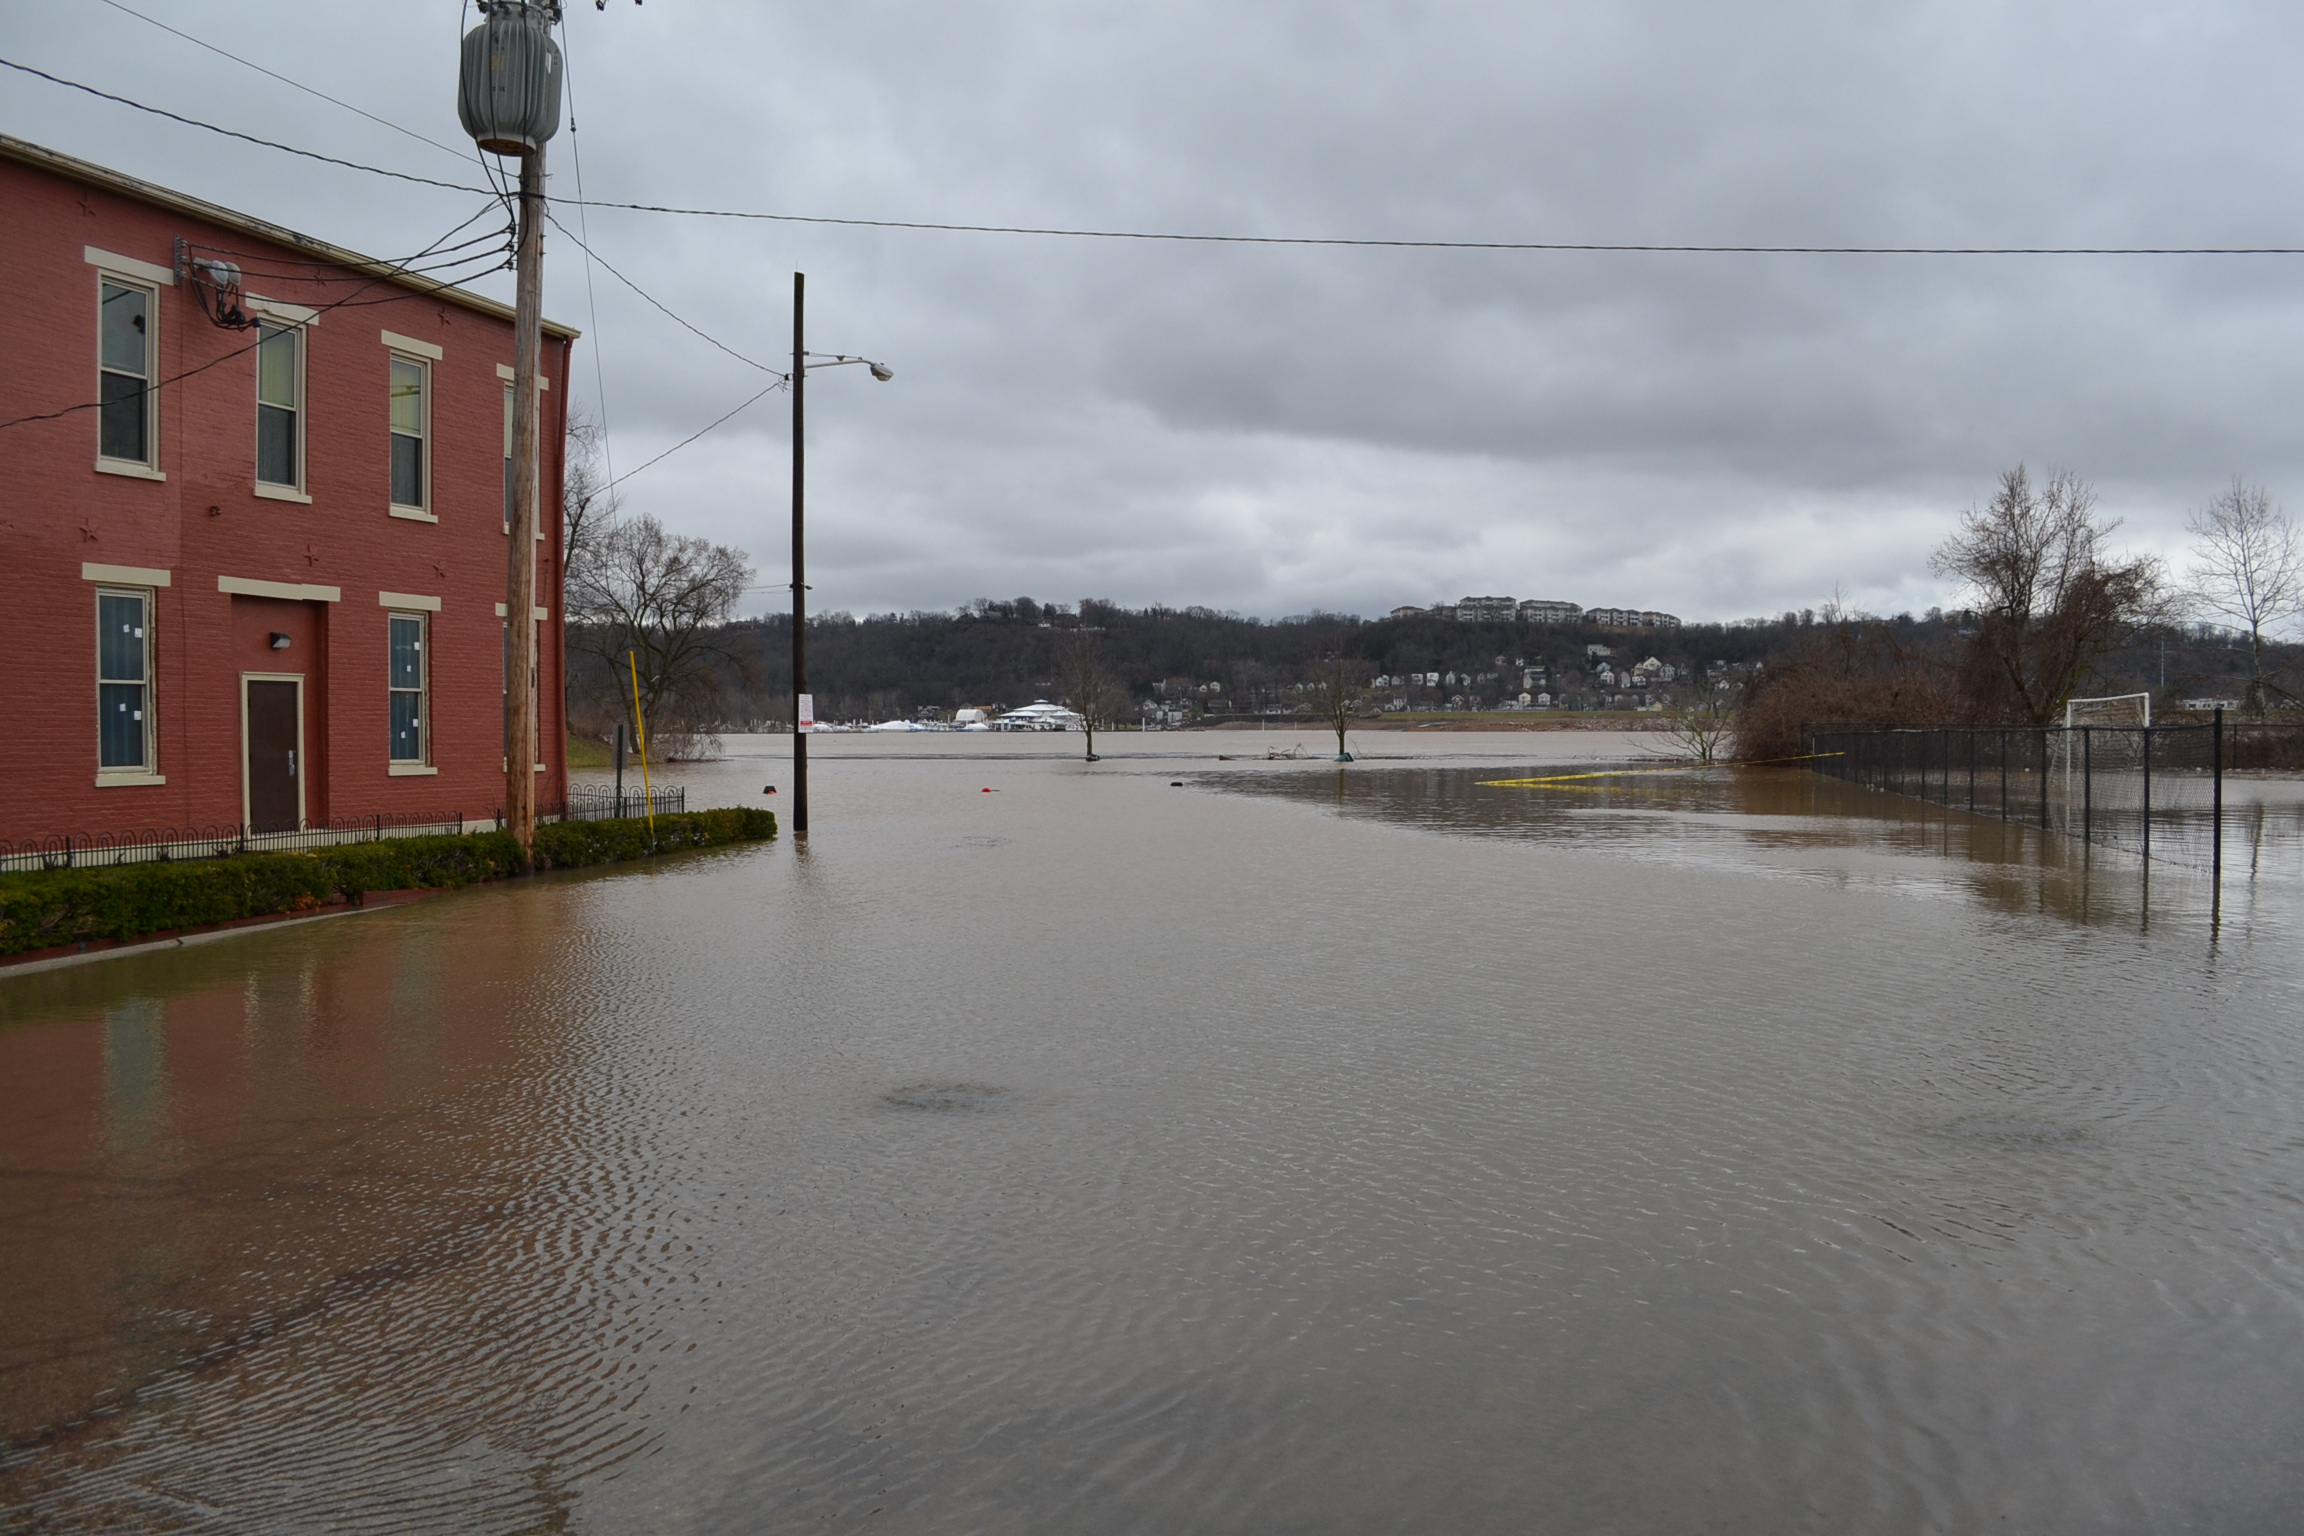 The Ohio River is up to the drive toward he lower parking lot during Flood 2018. (CT Photo/Greg Hartman)